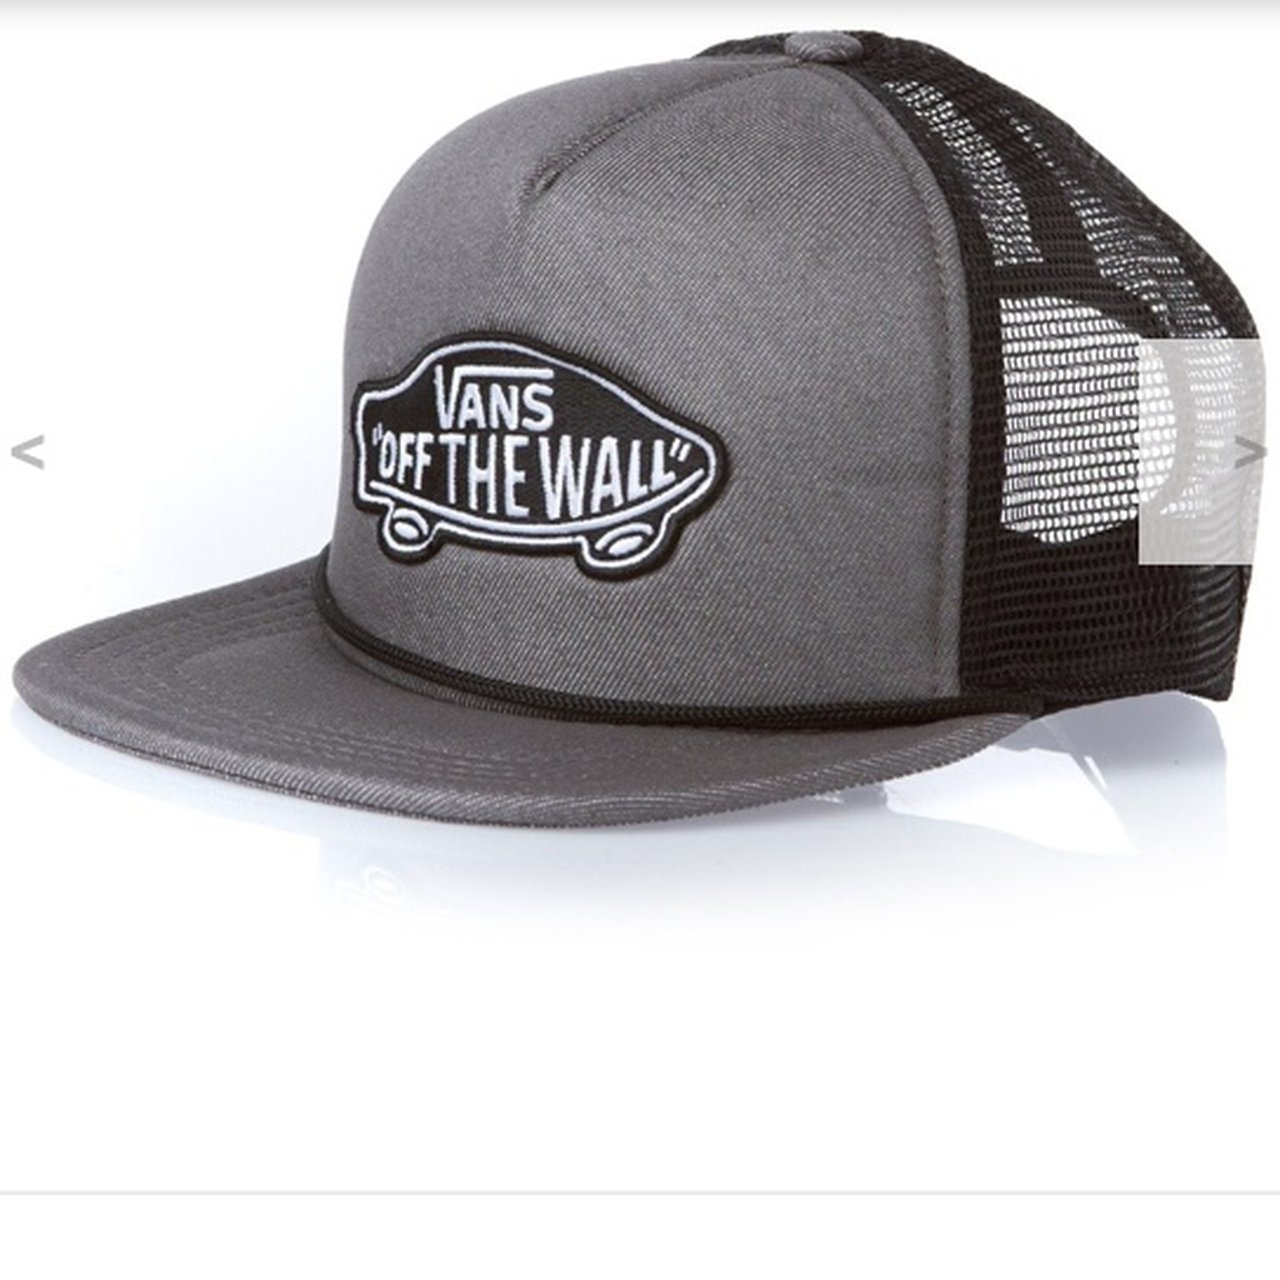 Vans Classic Patch Trucker Hat. Grey and black snapback. for - Depop 260405d4662e